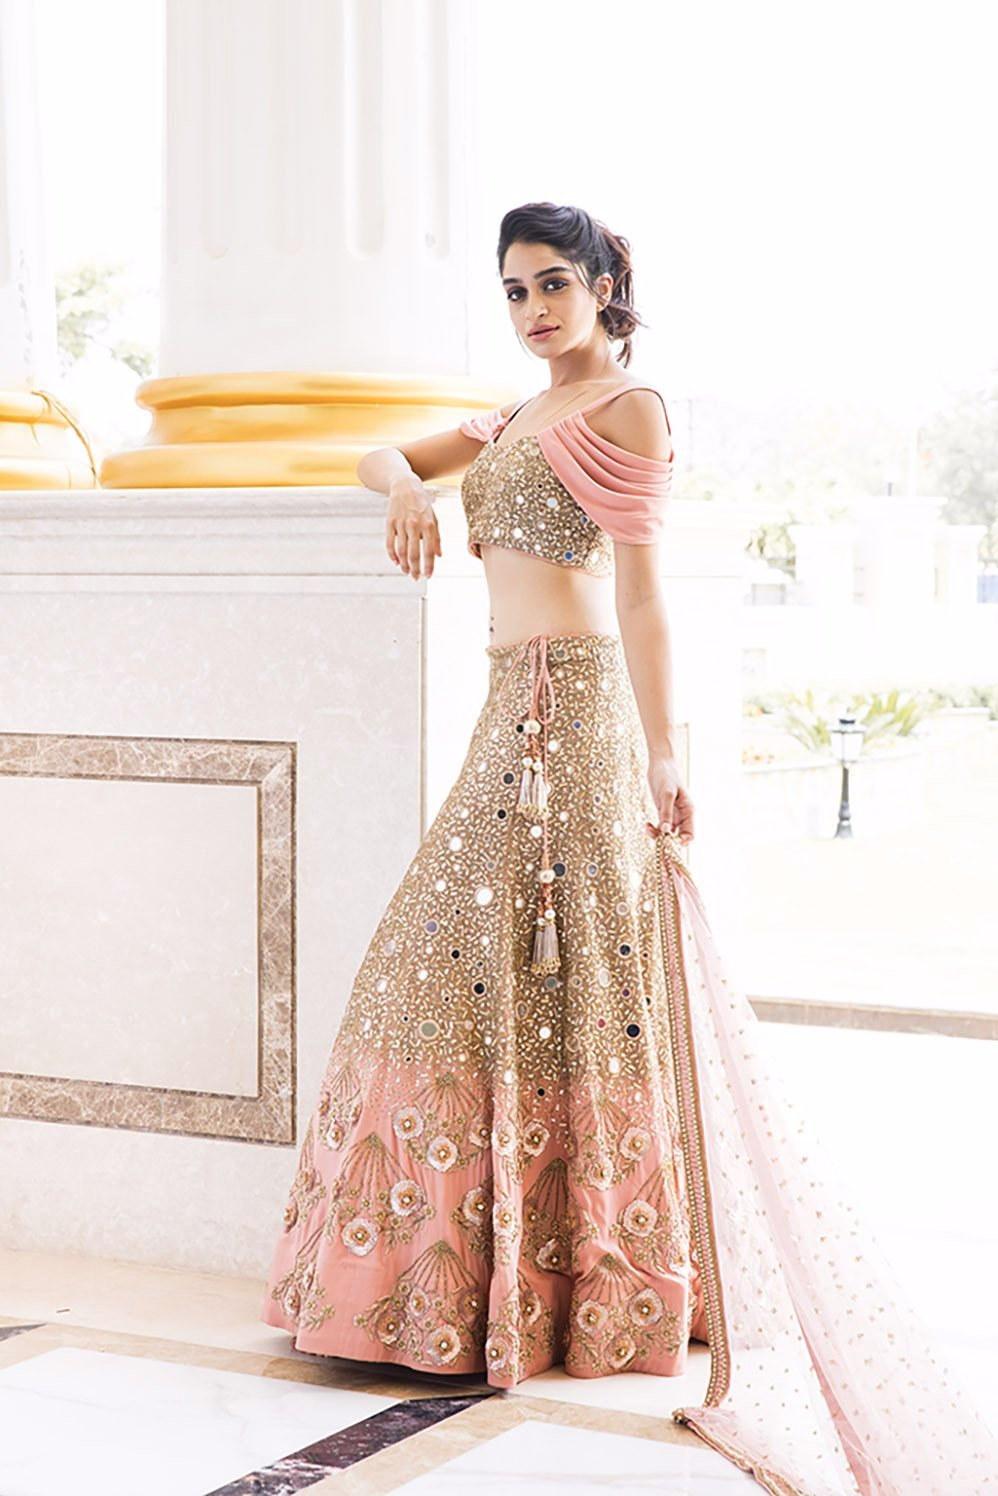 ISABELLA : Canyon Clay Drape Sleeves with Jaal embroidery Blouse and Lehenga